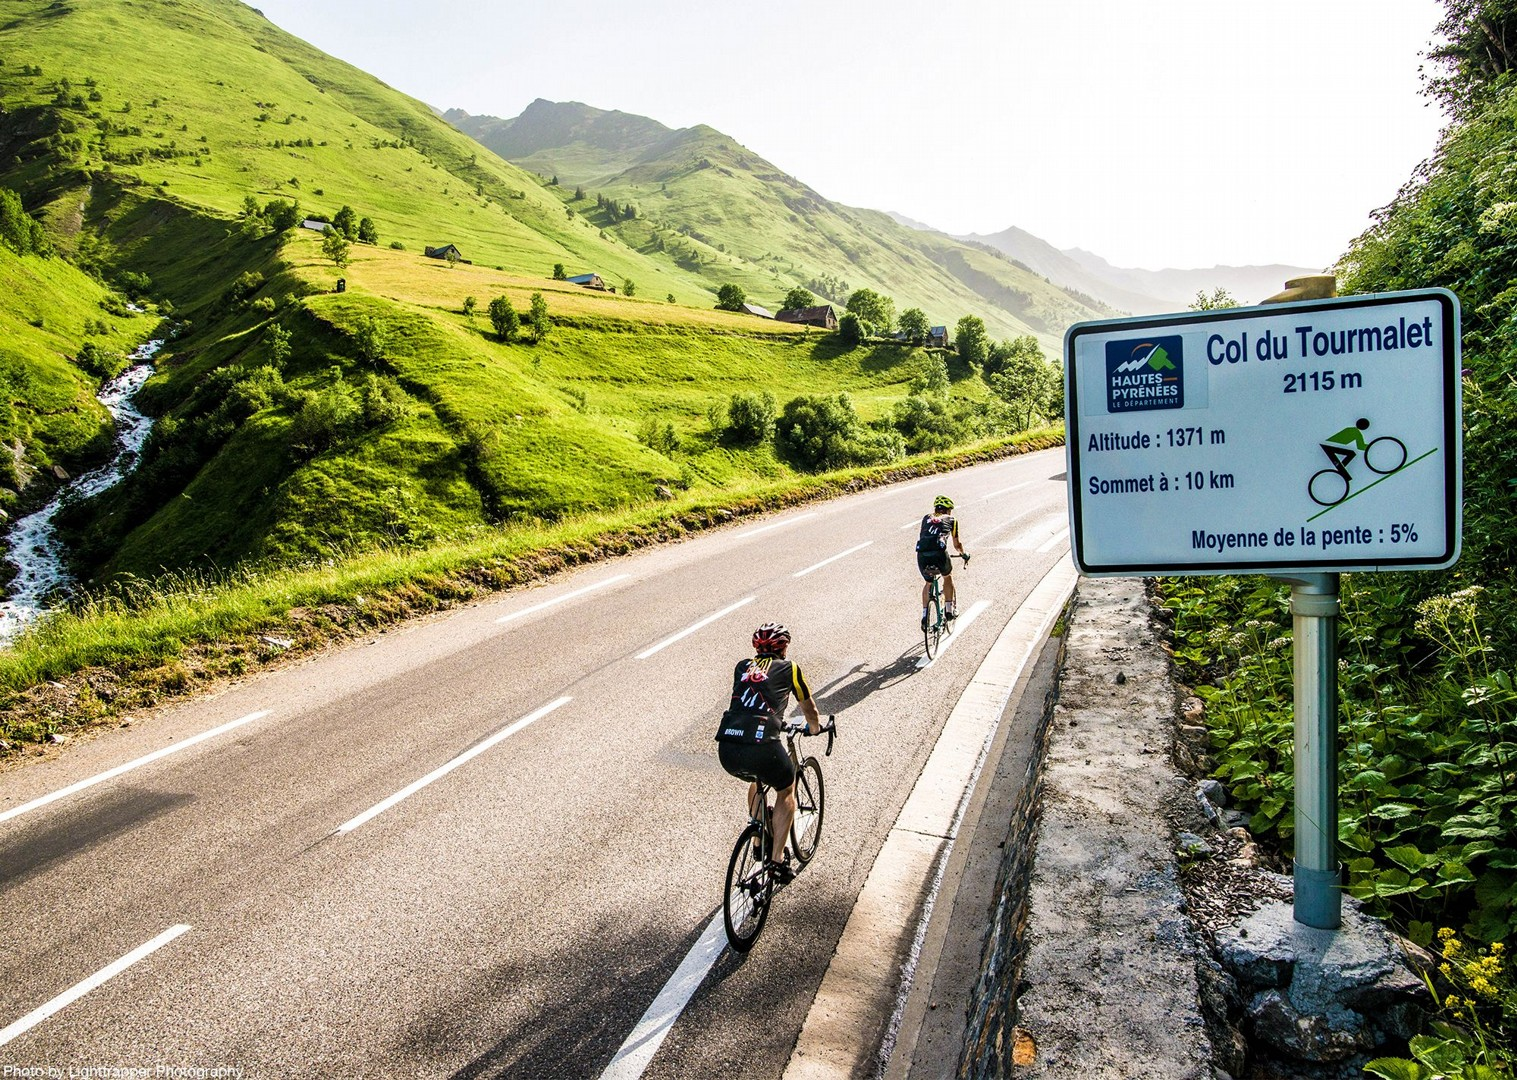 col-du-tourmalet-cycling-pyrenees-mountains-saddle-skedaddle.jpg - France - Trans Pyrenees Challenge - Guided Road Cycling Holiday - Road Cycling